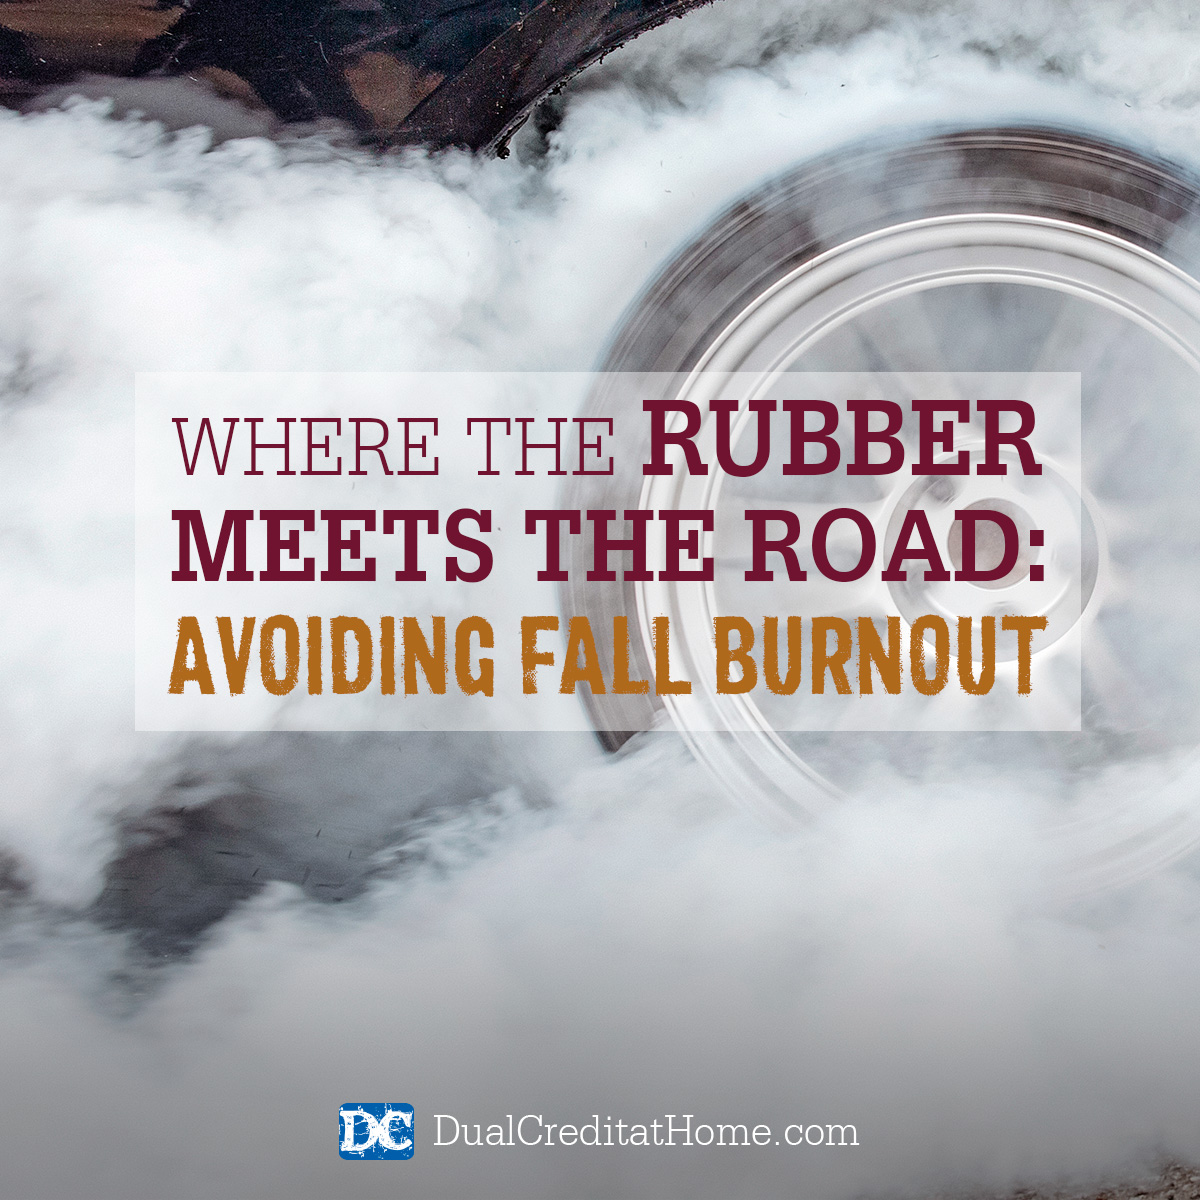 Where The Rubber Meets The Road, Avoiding Fall Burnout!